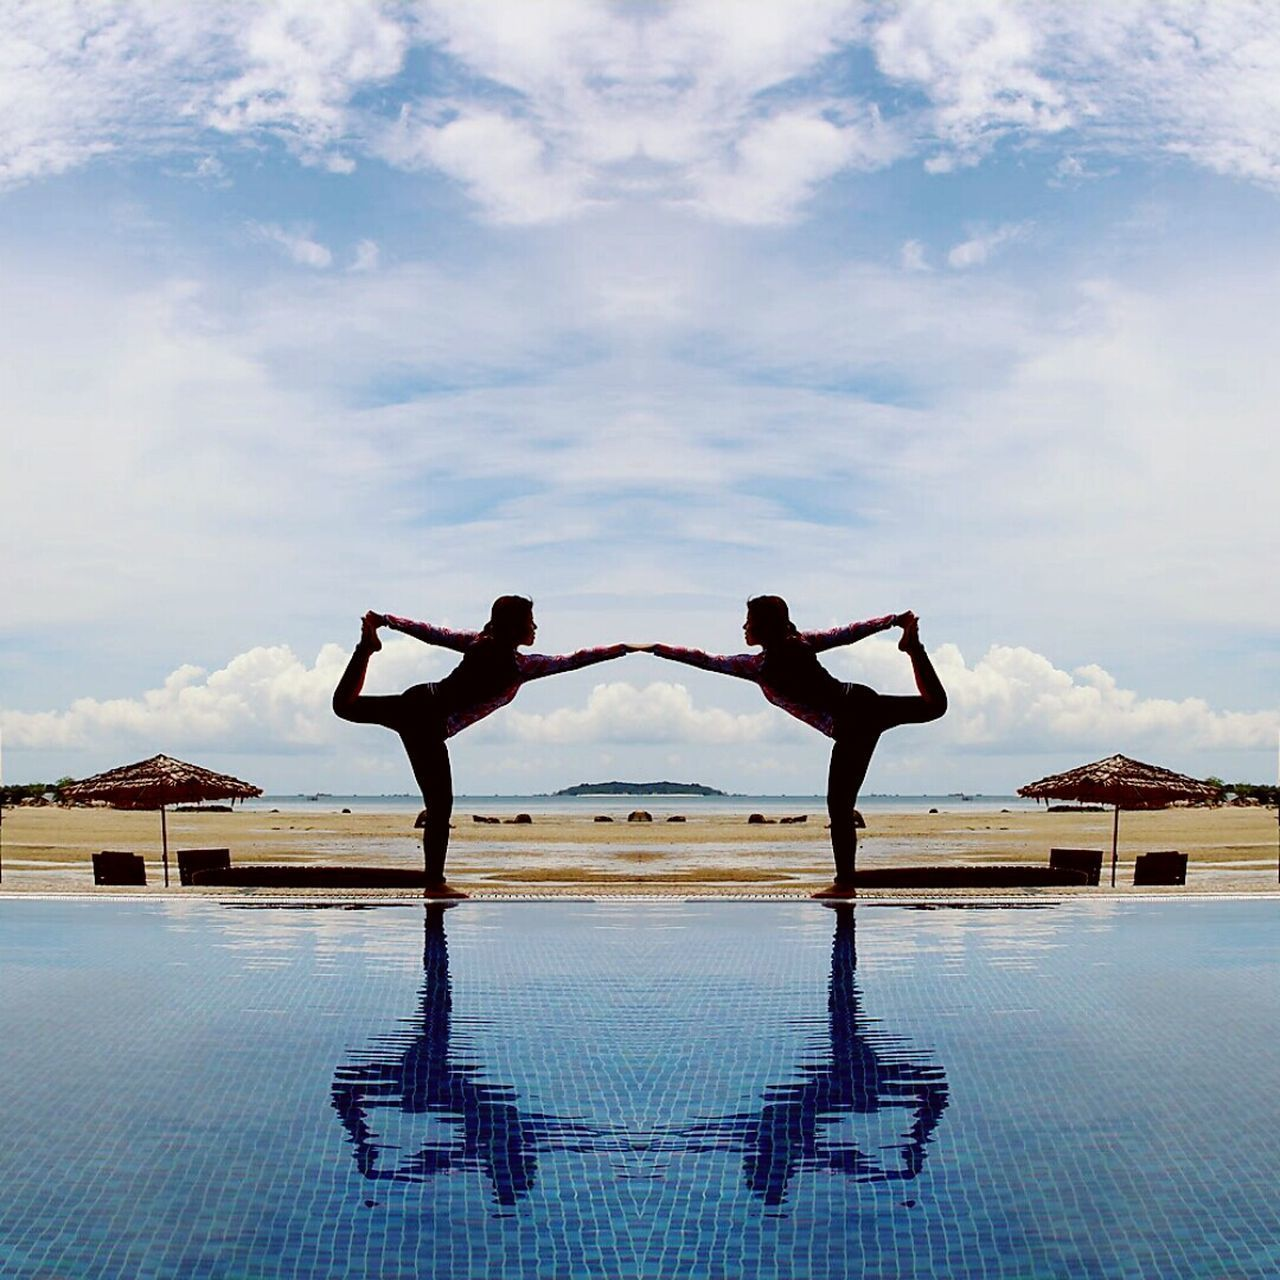 two people, swimming pool, real people, leisure activity, full length, men, exercising, lifestyles, yoga, water, arms raised, cloud - sky, day, wellbeing, sky, arms outstretched, balance, healthy lifestyle, standing, togetherness, young men, outdoors, young adult, architecture, young women, flexibility, adult, adults only, people